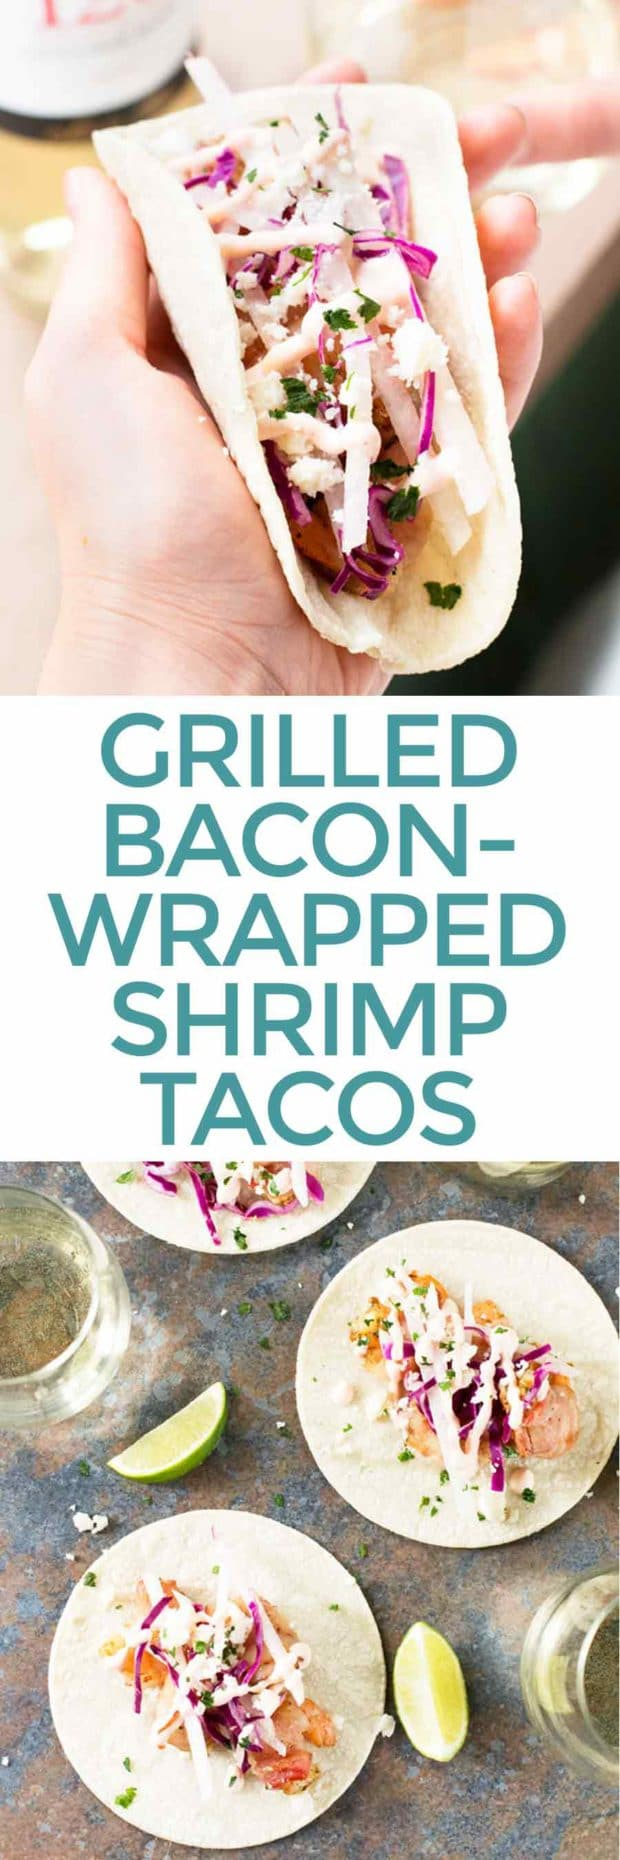 Grilled Bacon-Wrapped Shrimp Tacos | cakenknife.com #grilling #summer #tacotuesday